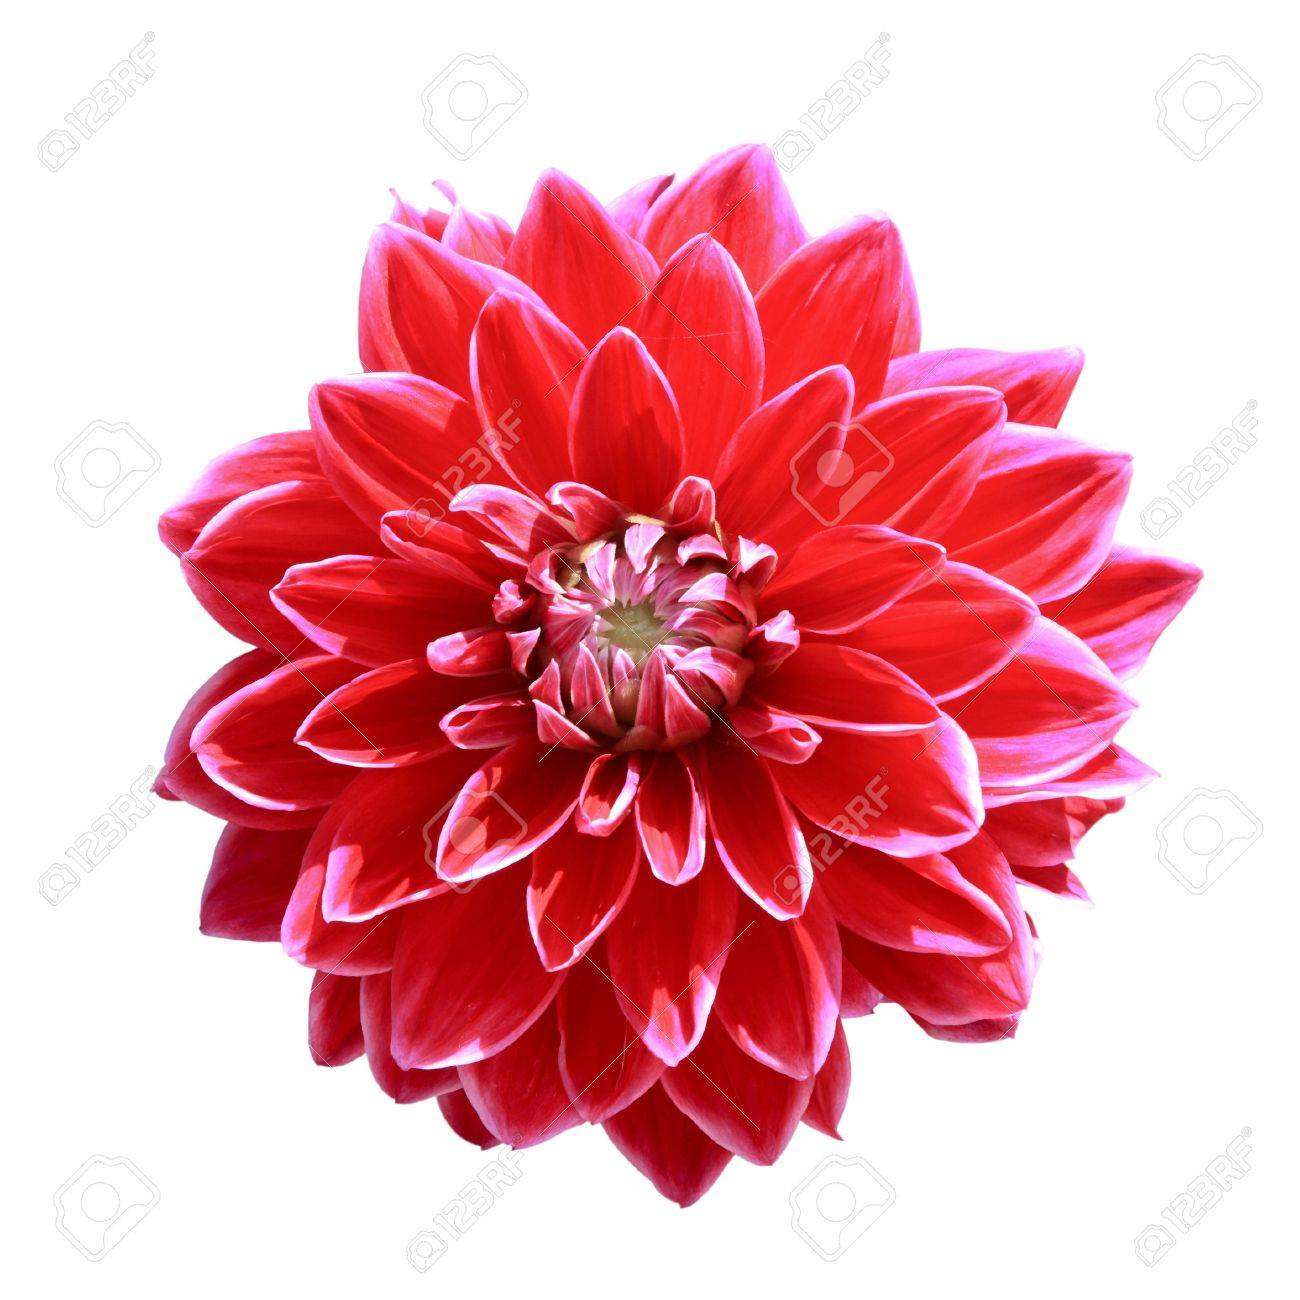 Dahlia flower stock photos royalty free dahlia flower images red dahlia flower isolated on white izmirmasajfo